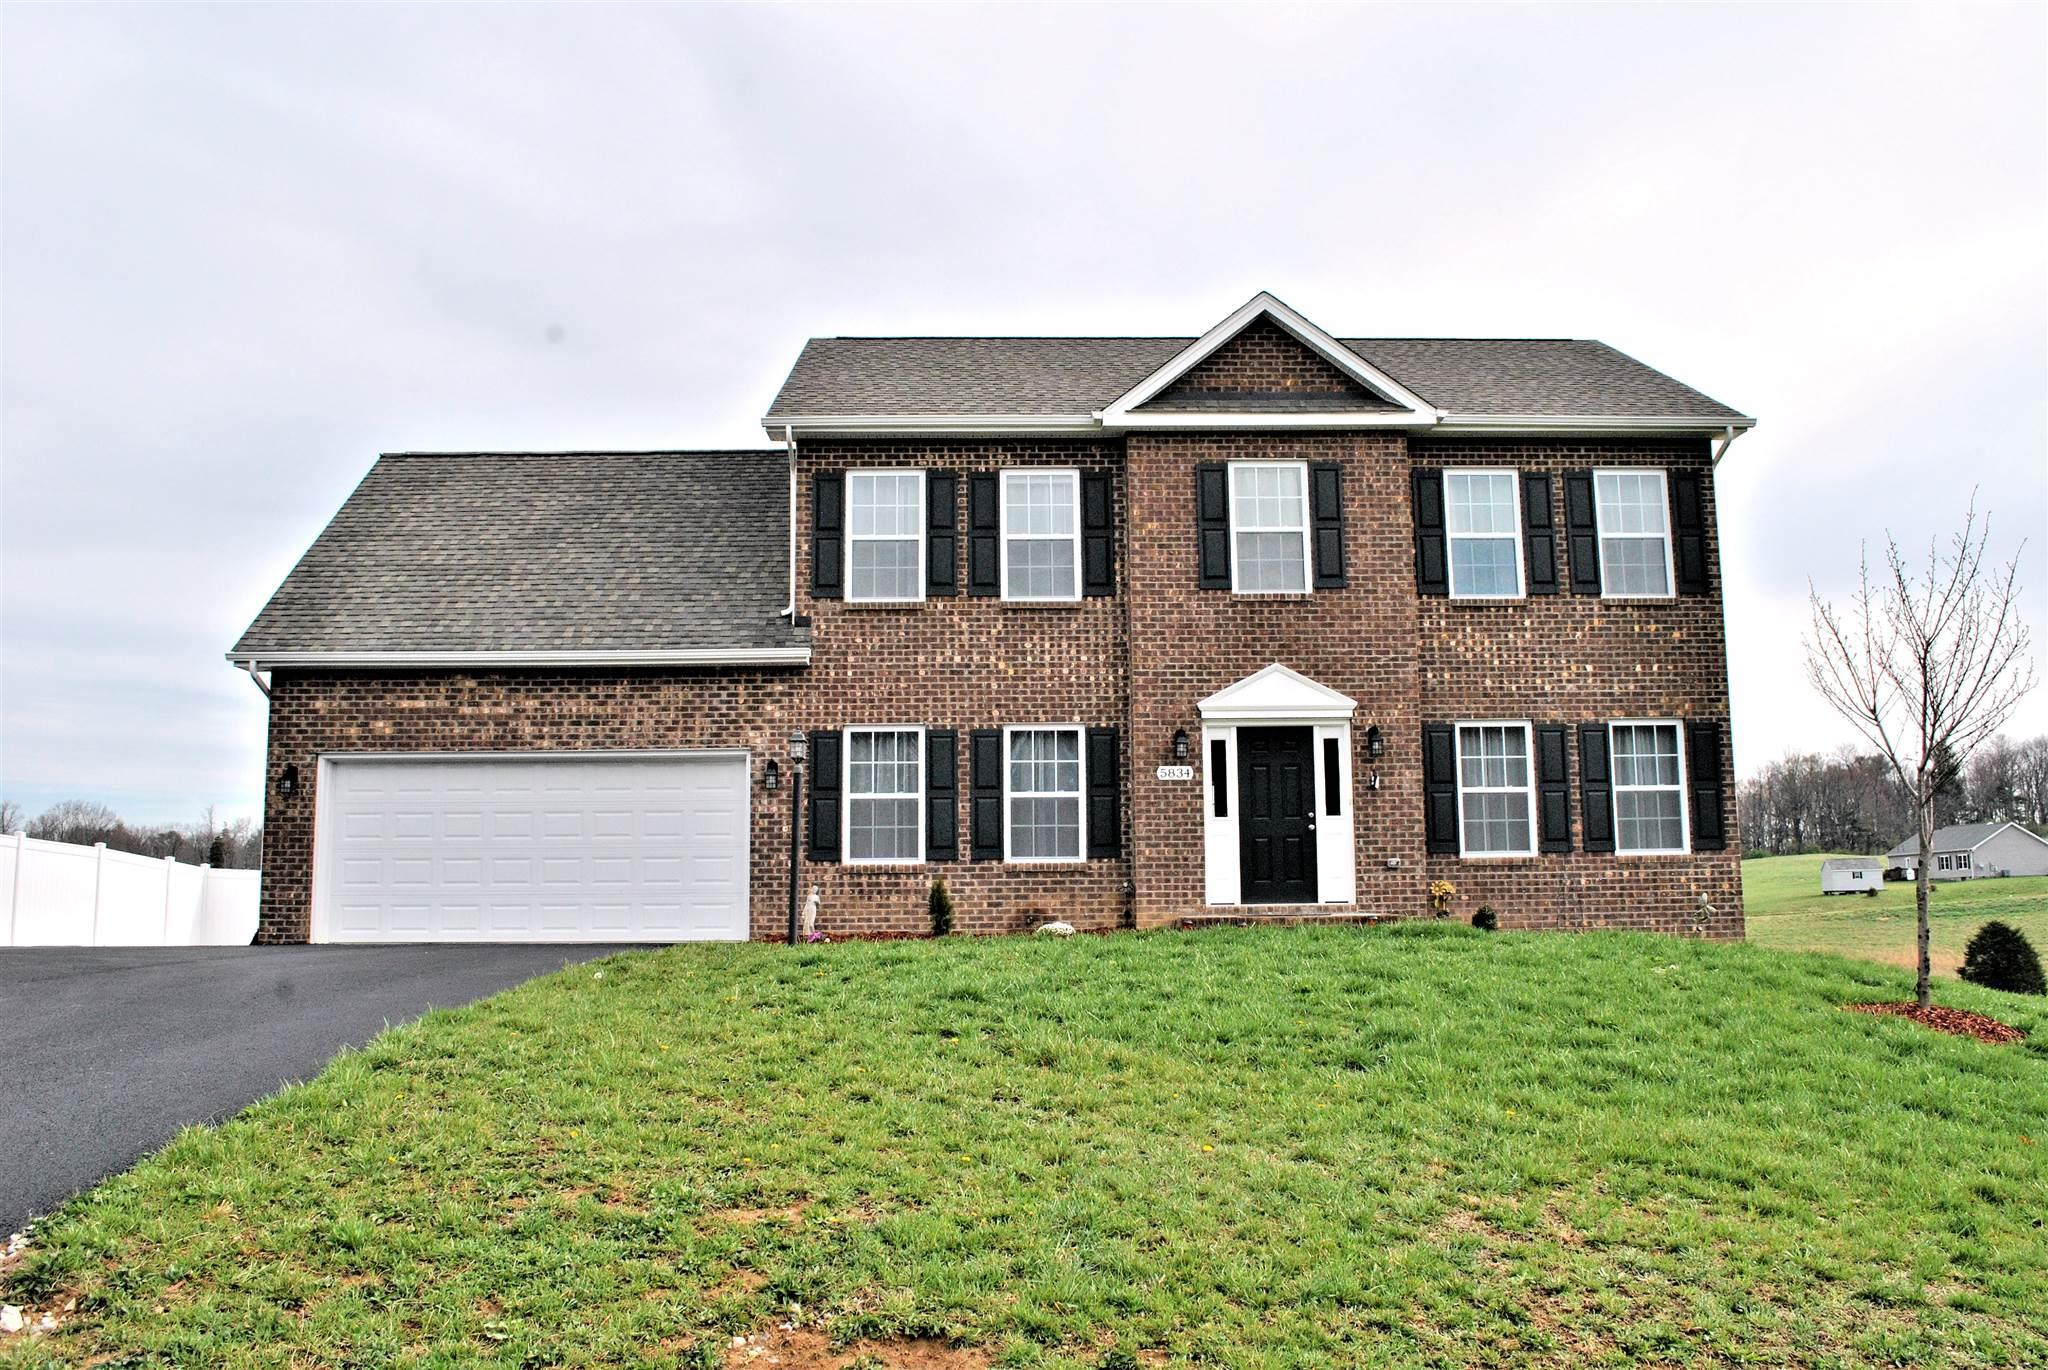 Pristine brick & vinyl four bedroom colonial in the peaceful Hogans Retreat Subdivision on corner 1.5 acre lot. This move-in ready home has a half bath & hardwood floors on main level, formal dining room, granite counters w/  pantry in kitchen & breakfast nook w/ bay window overlooking the backyard. Enjoy the convenience of the laundry on the upper floor with all of the bedrooms. The master bedroom has an enormous walk-in closet & master bath complete with double sinks & tiled walk-in shower. Bring in your groceries from the two-car attached garage directly into the kitchen & enjoy warm evenings on the rear deck. There are two heat pumps for zoned heating and a large 12x24 outbuilding and built-in play set. The unfinished walk-out basement has been plumbed for an additional bath & can be finished to create more living space. There is an over-sized paved driveway w/ white vinyl privacy fence for parking a camper. A gorgeous home in the Auburn school district that is better than new!